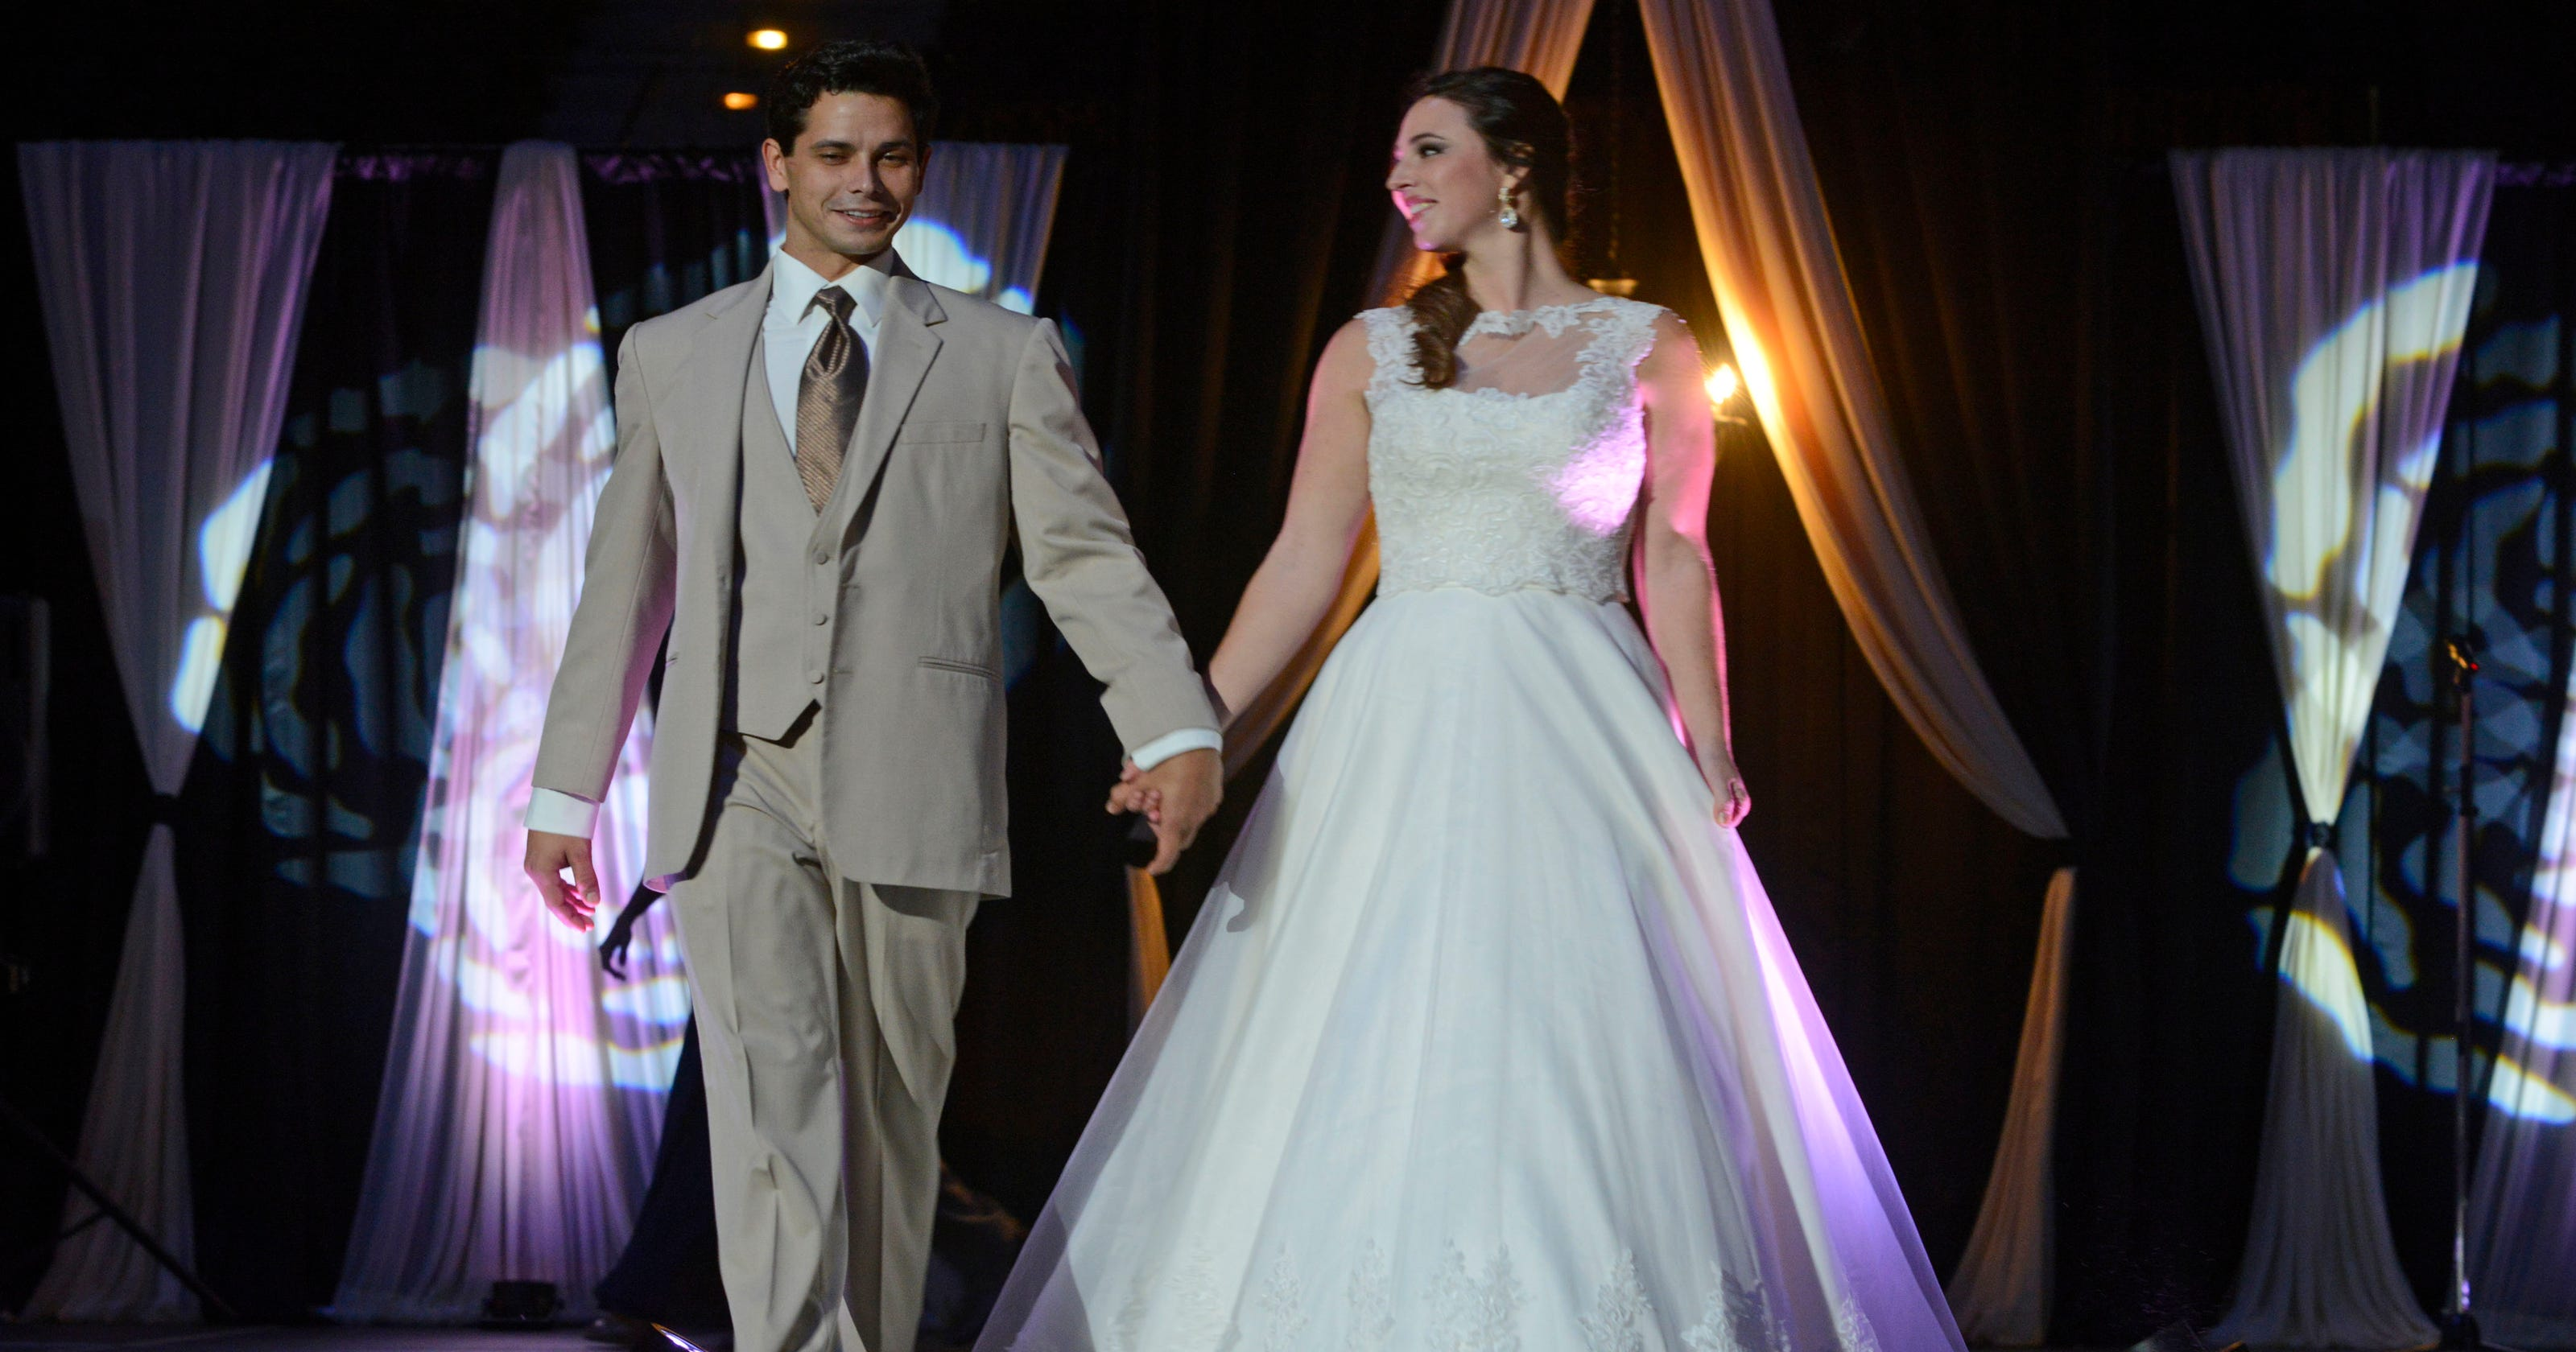 Las Vegas Marks Veterans Day With Free Weddings For Military